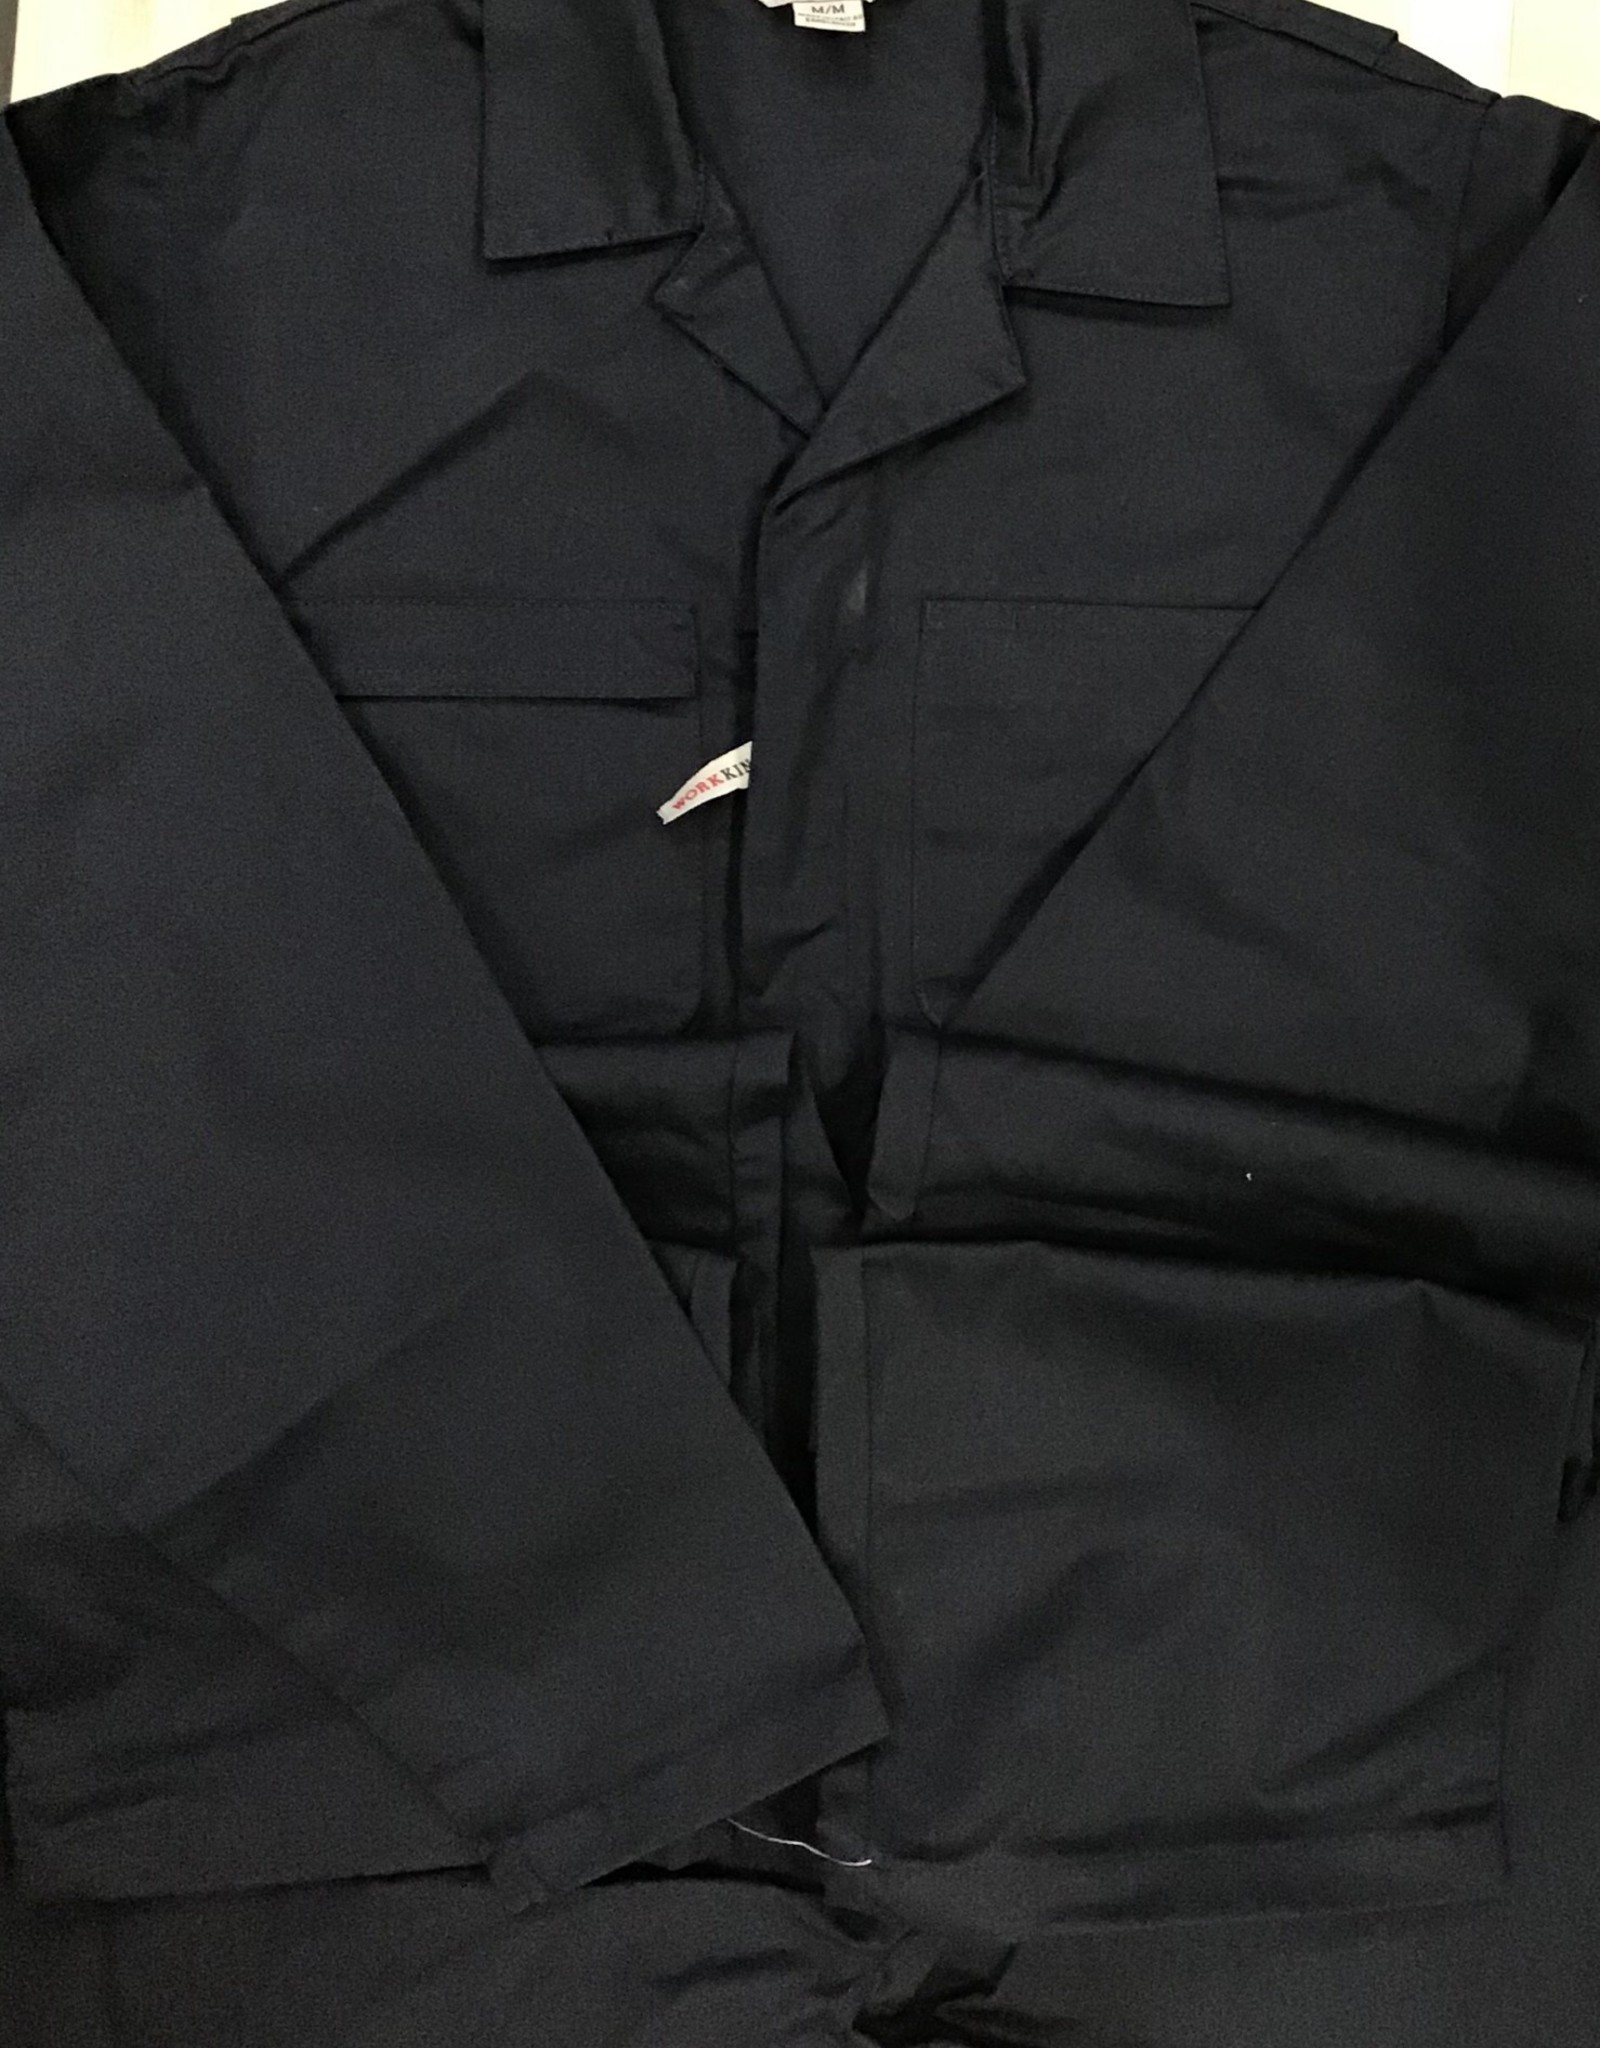 Work King Work King I063 Unlined Coverall Men's